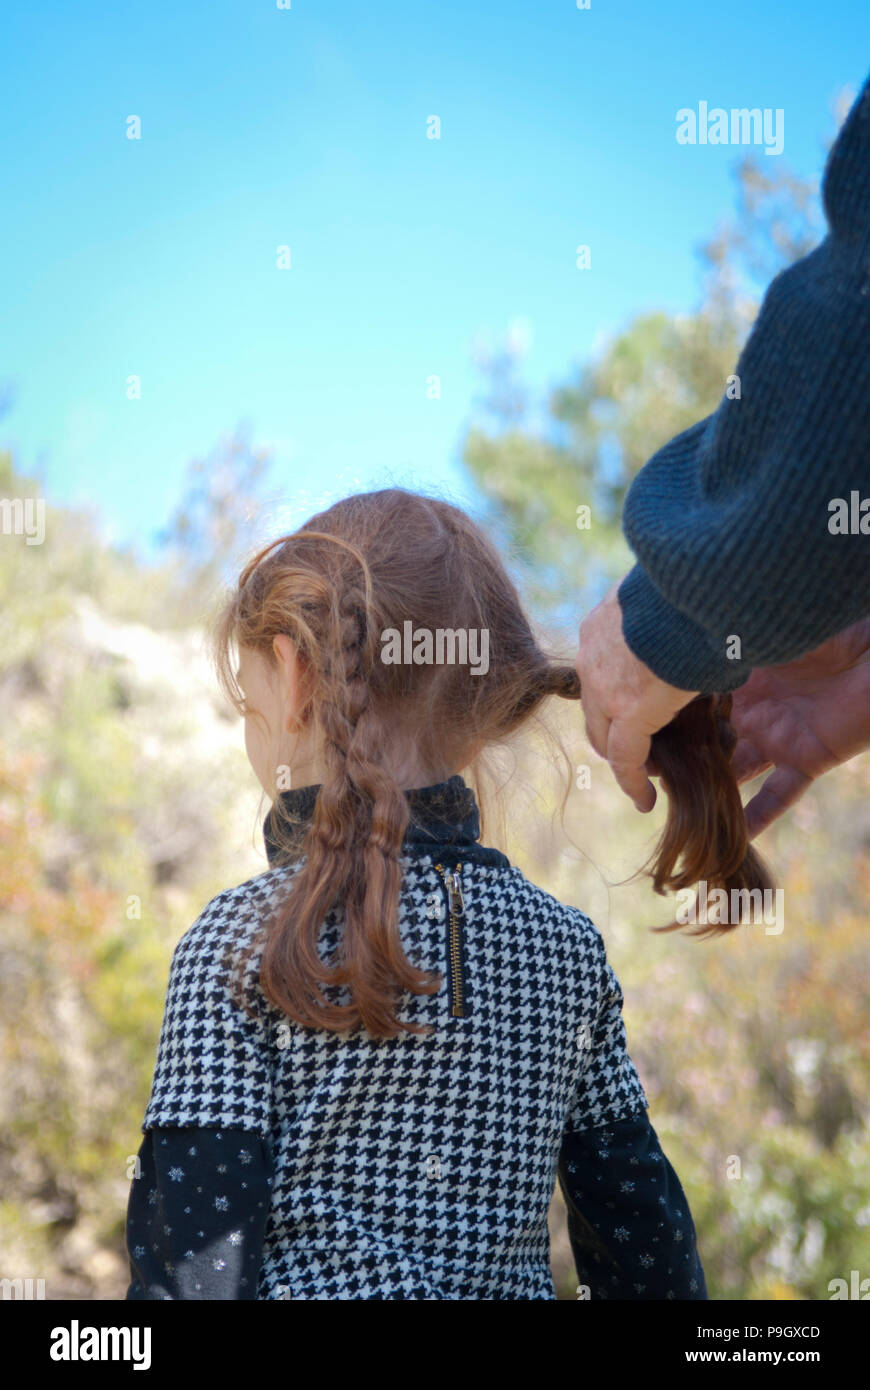 cropped view of a father plaiting his four year old daughter's red long hair outside with trees in background - Stock Image